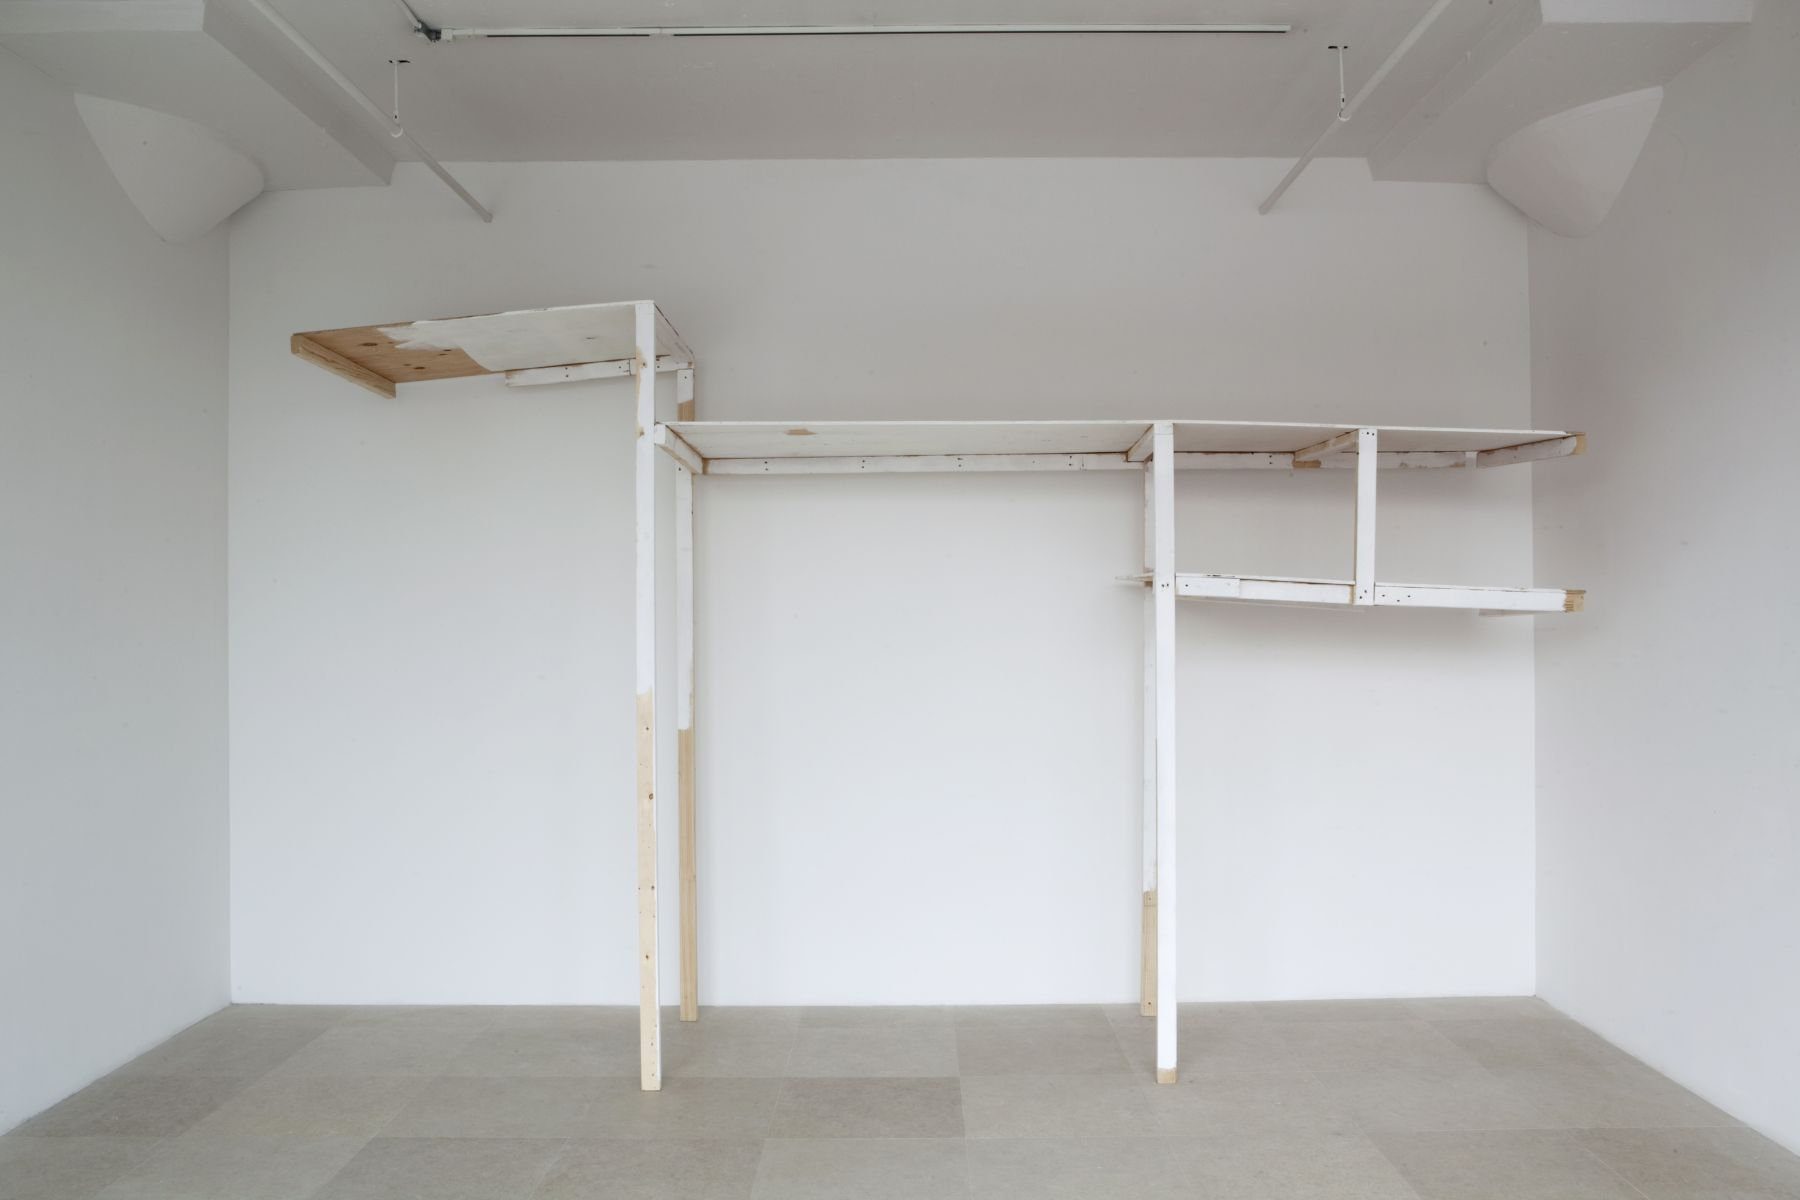 Gedi Sibony, Set Into Motion (Asleep Inside the Wall), 2010, wood, screws, paint, 106 x 176 x 36 1/2 inches